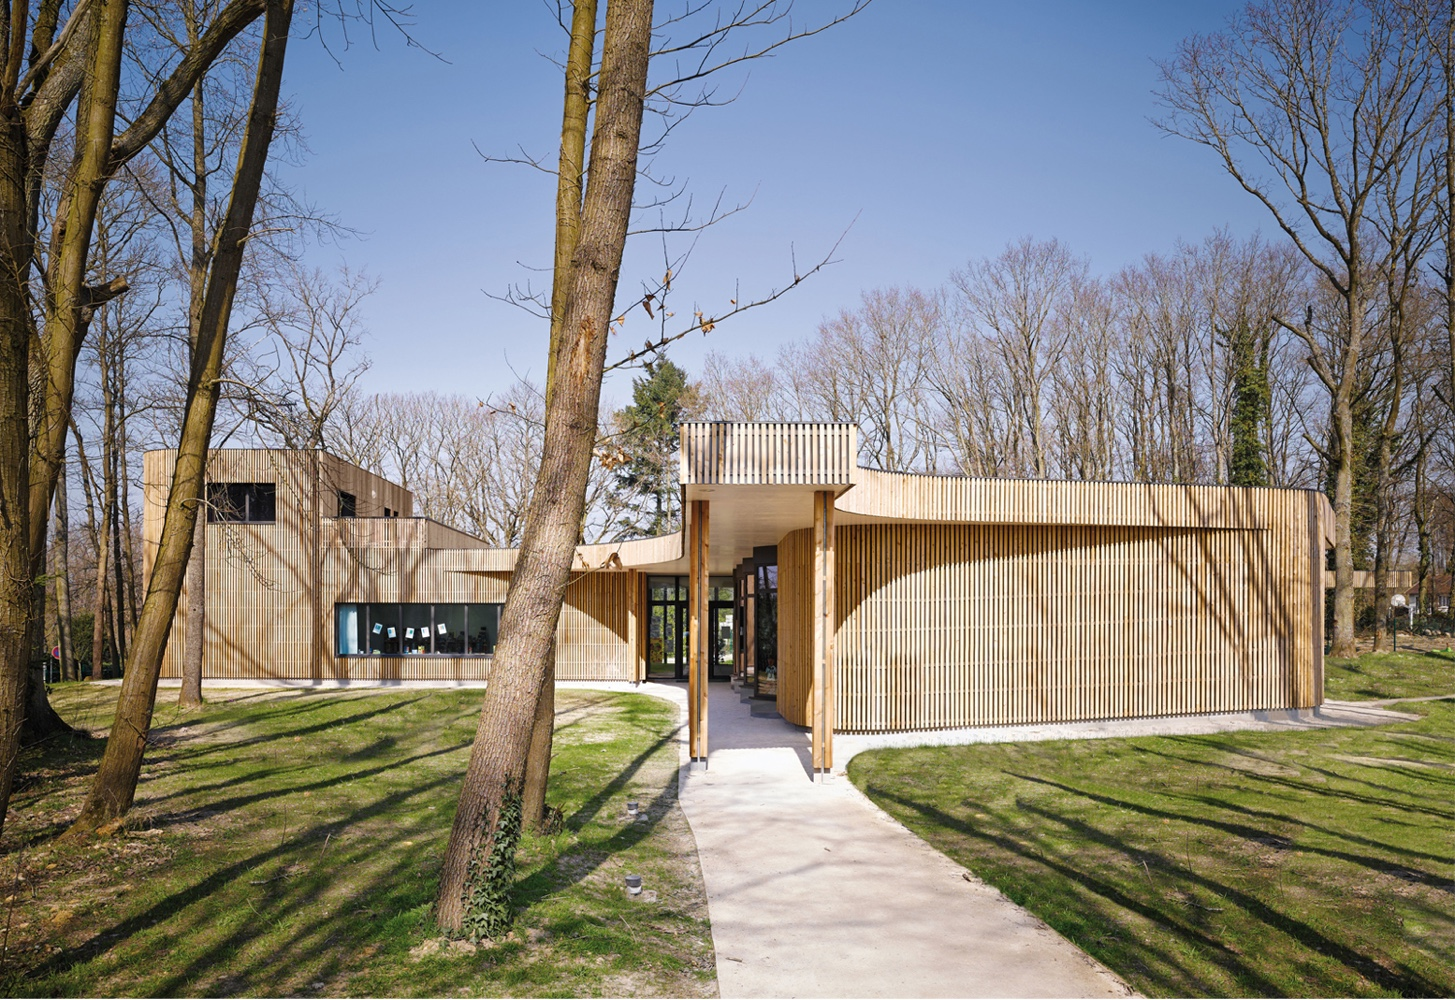 The school building in Briis-sous-Forges was designed by MU Architecture and Archicop.